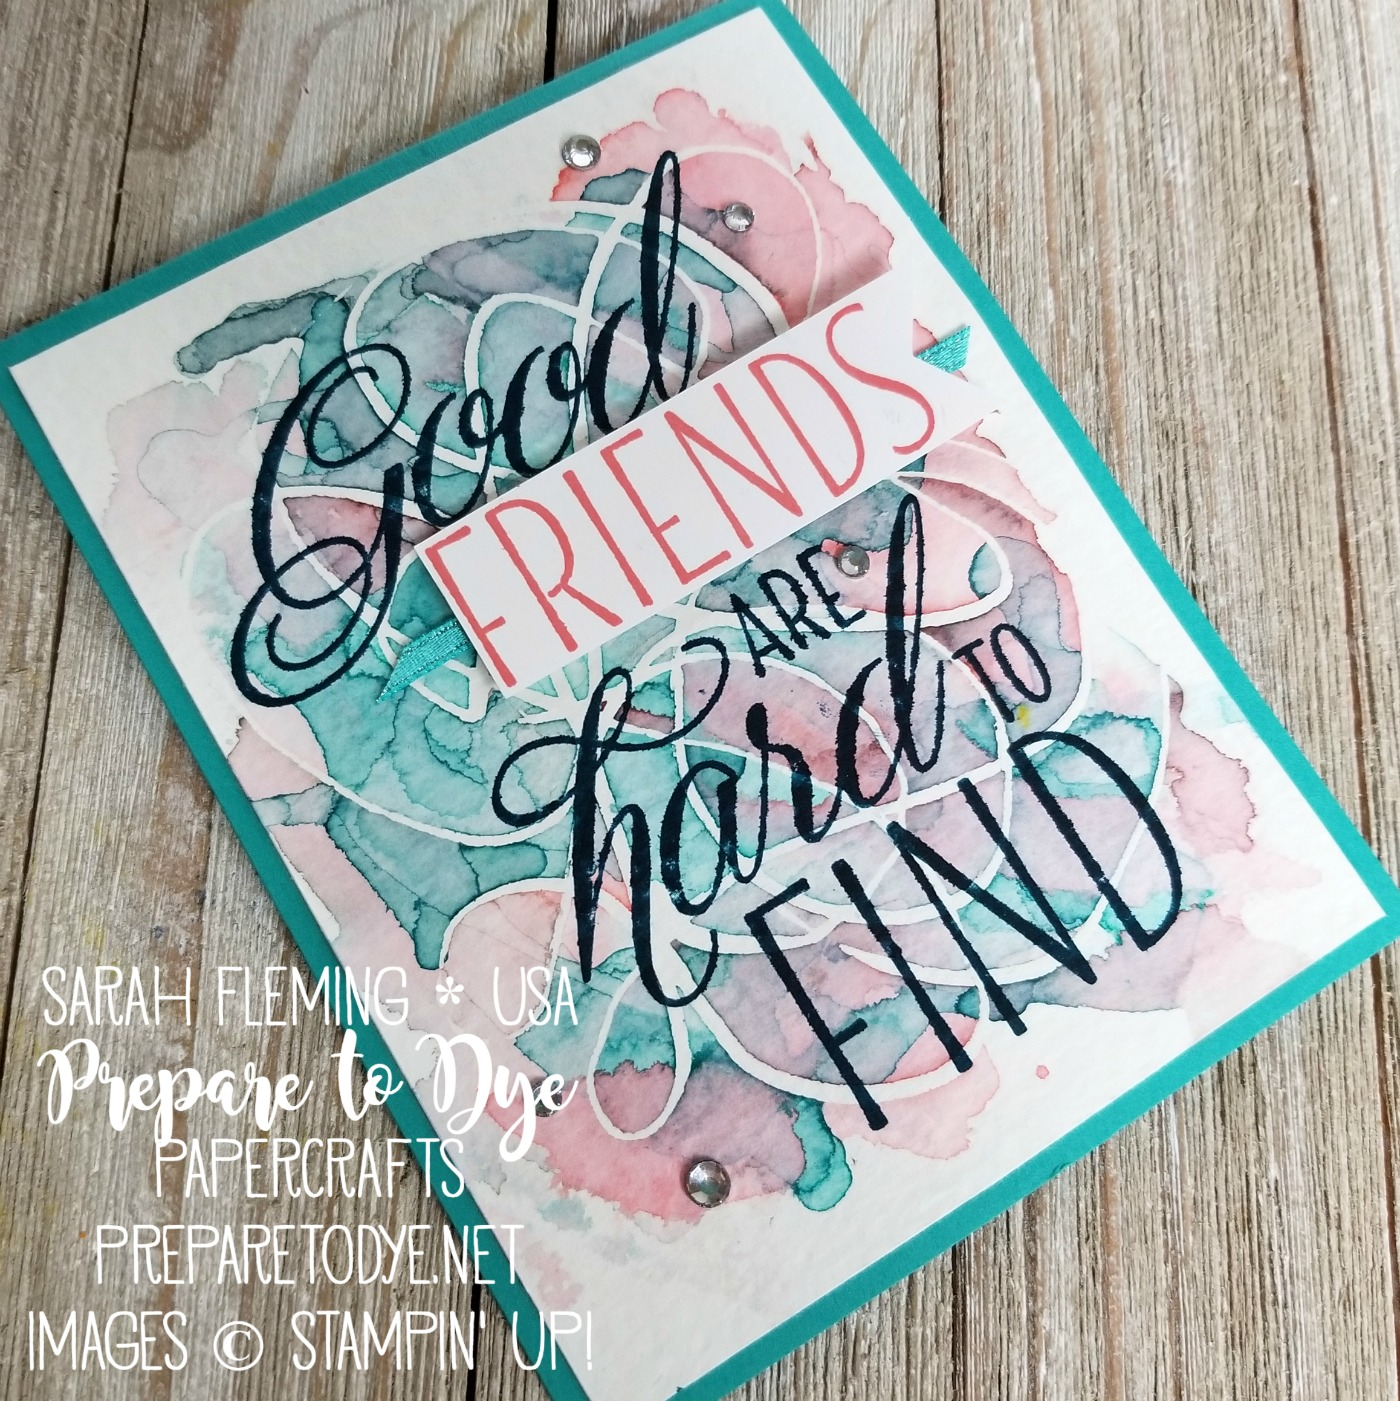 Stampin' Up! Lovely Friends with watercolor wash background and masking fluid - Ink & Inspiration Blog Hop - Sarah Fleming - Prepare to Dye Papercrafts